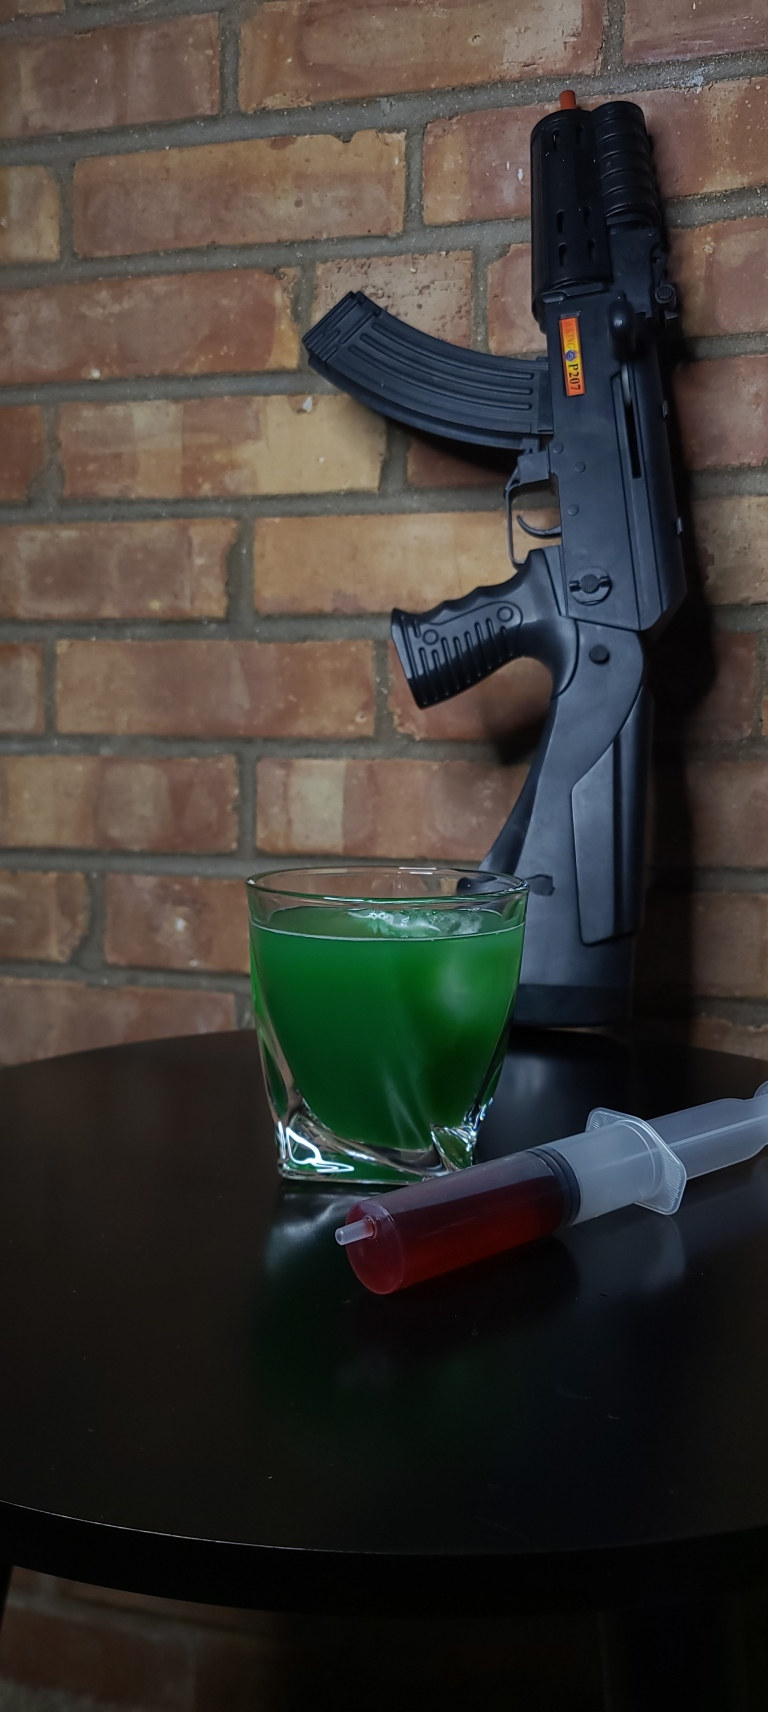 Green drink named 28 Days of Menthe sits in twisted glass with ice. Red syringe sits on black table with gun in the background on brick wall.